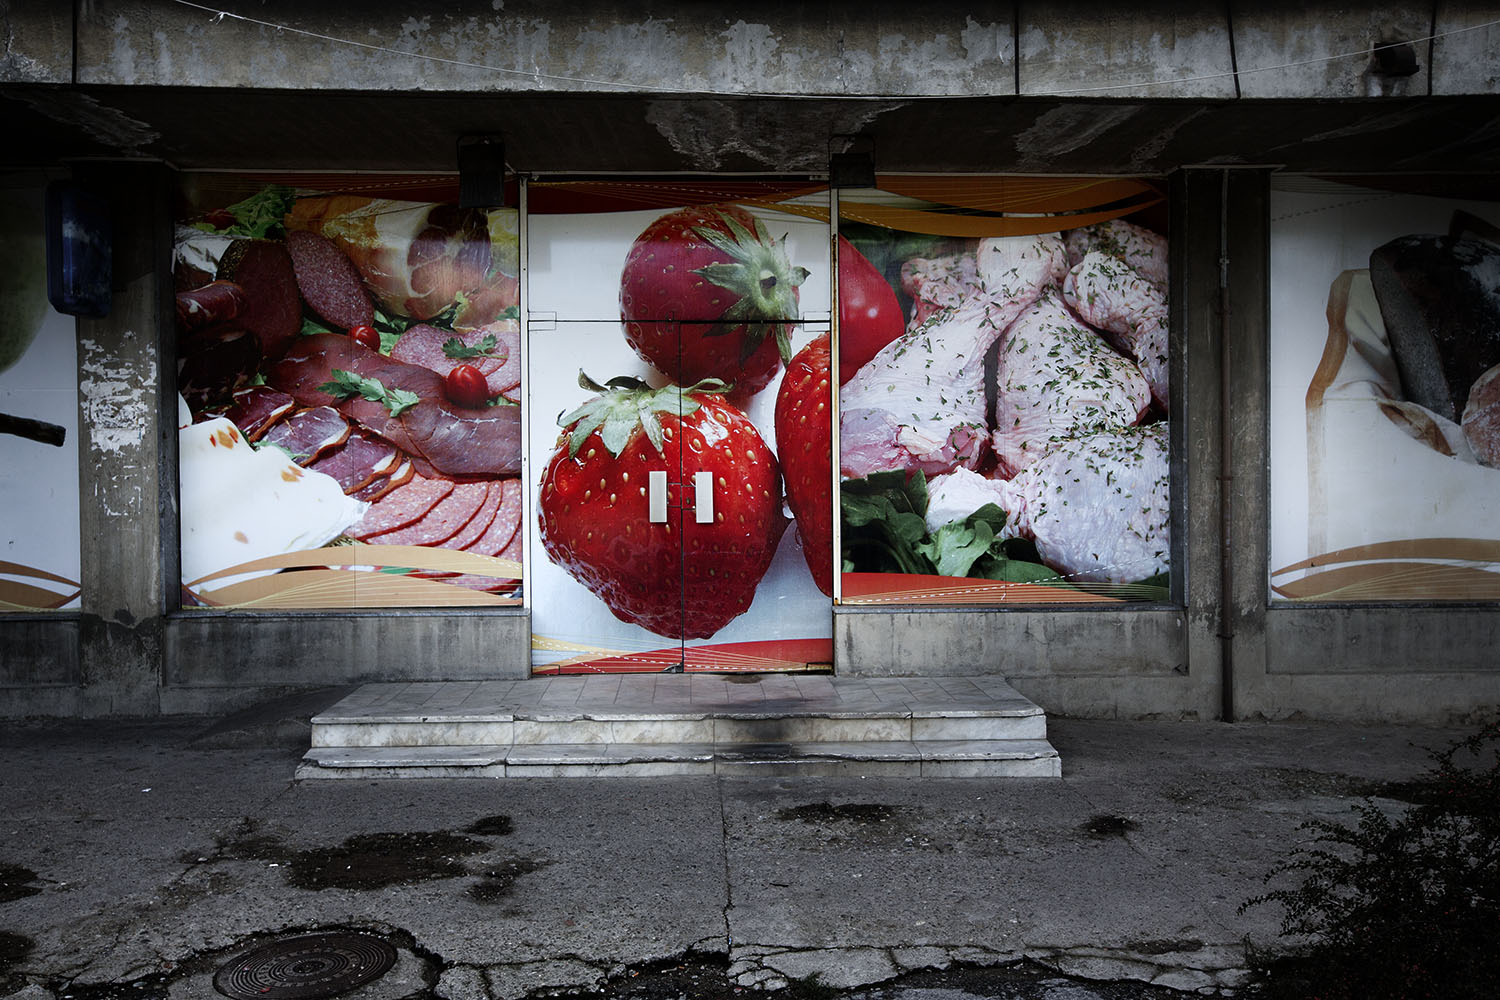 Actrices Porno Serbia east of berlin — daniel rosenthal photographer